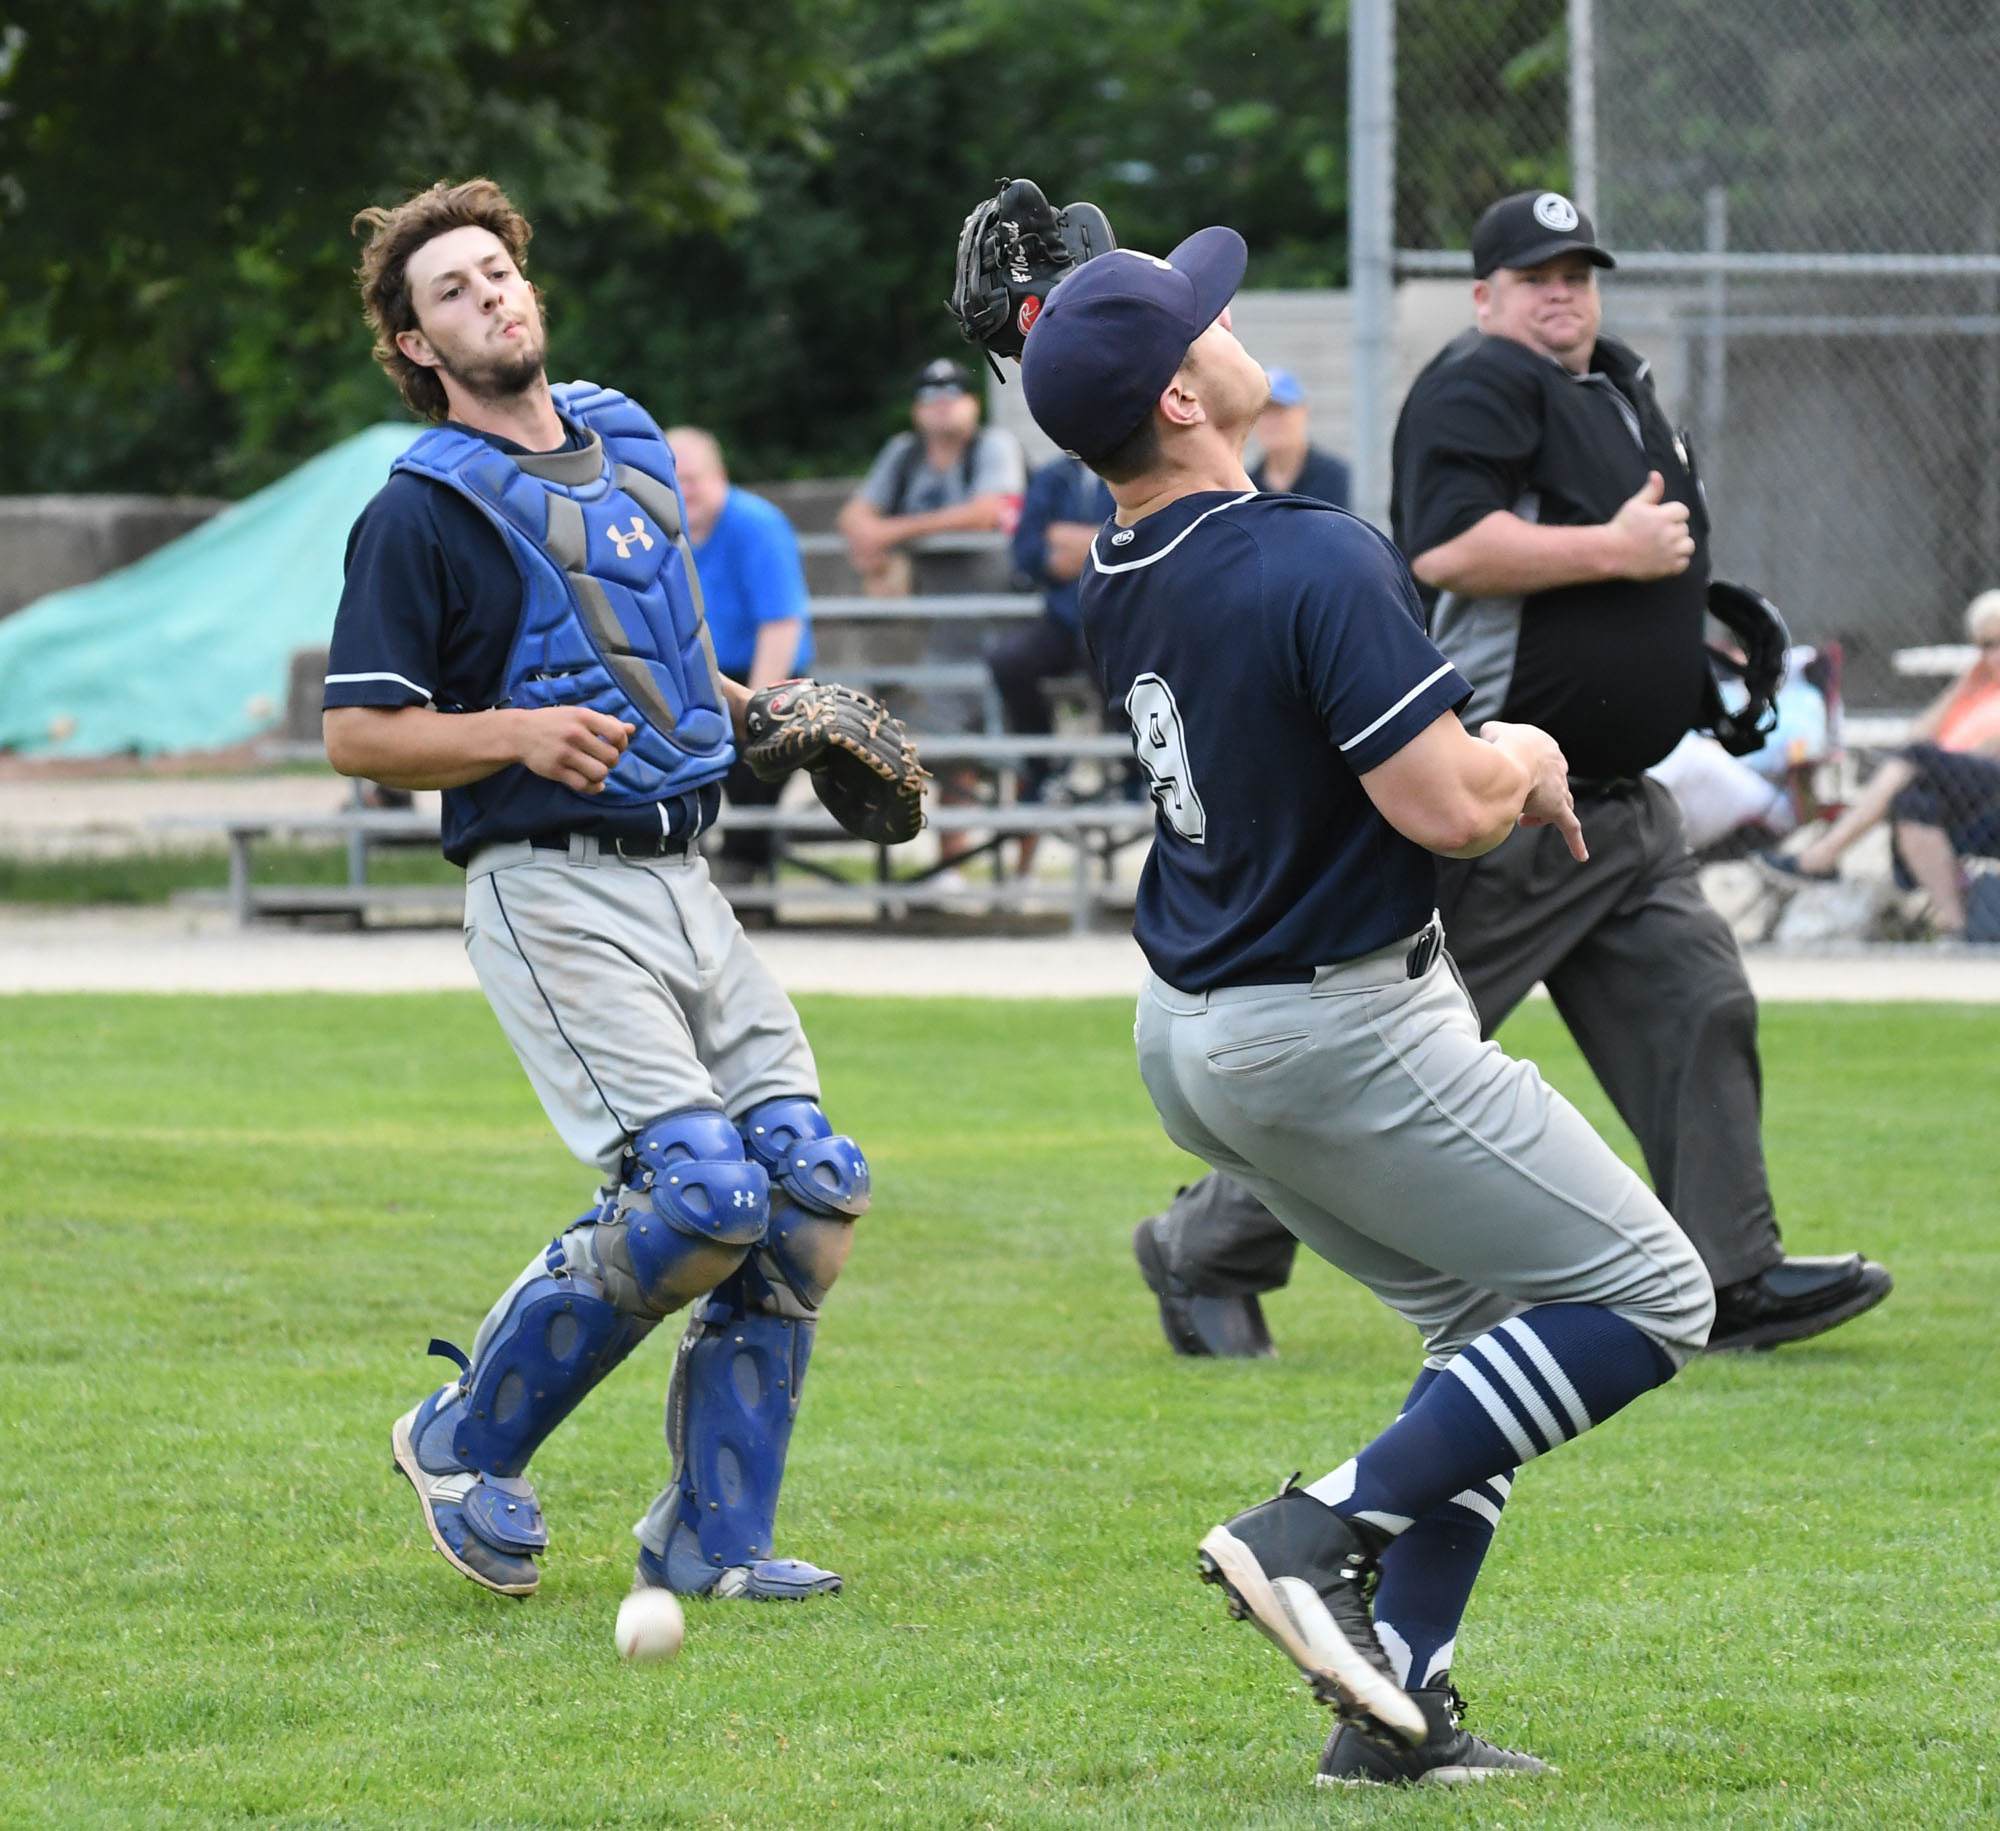 Photos: Guelph Royals-Barrie IBL baseball